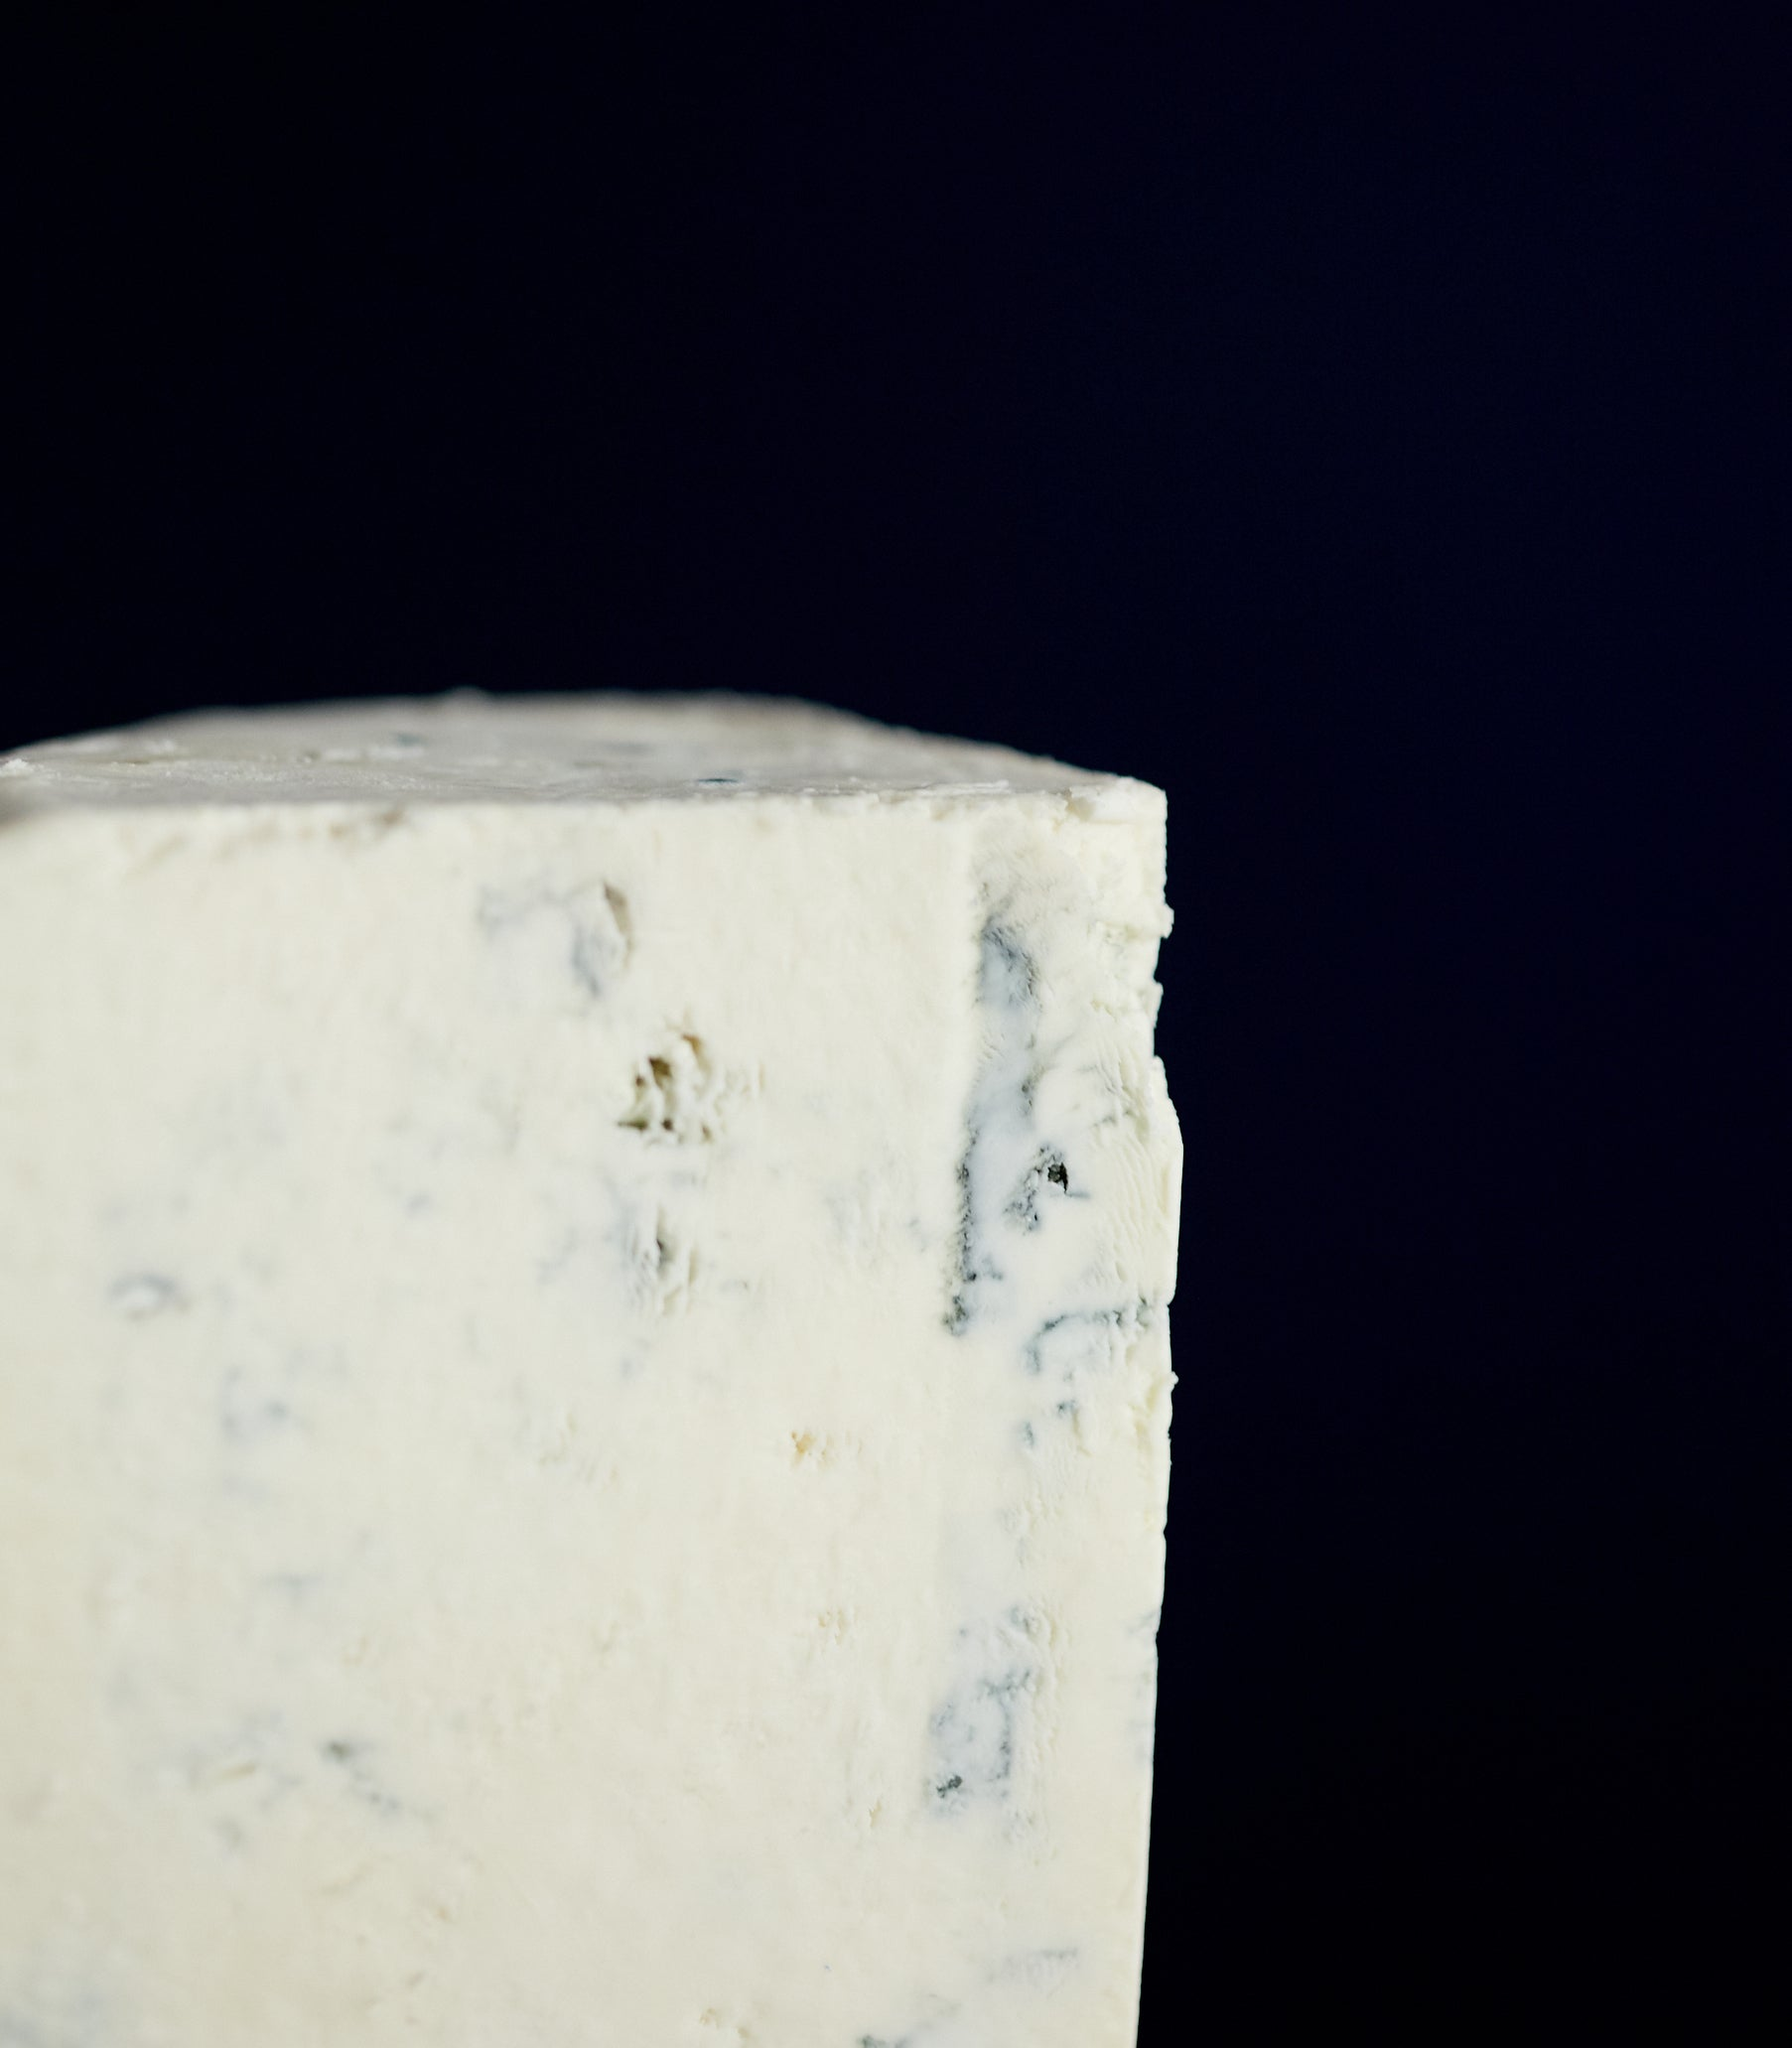 Close up of a cut piece of Harbourne Blue vegetarian goat's milk cheese showing the light blue veining and a crumbly texture